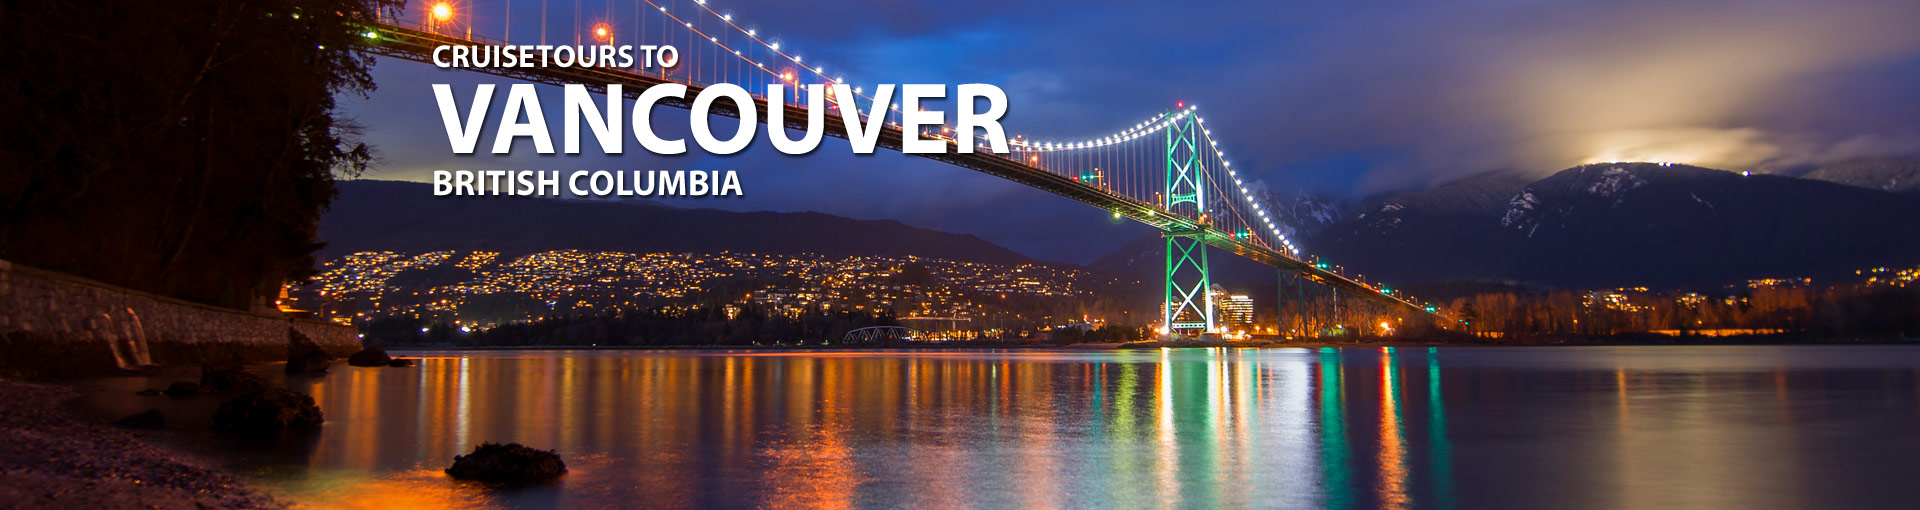 Cruisetours to Vancouver, Canada